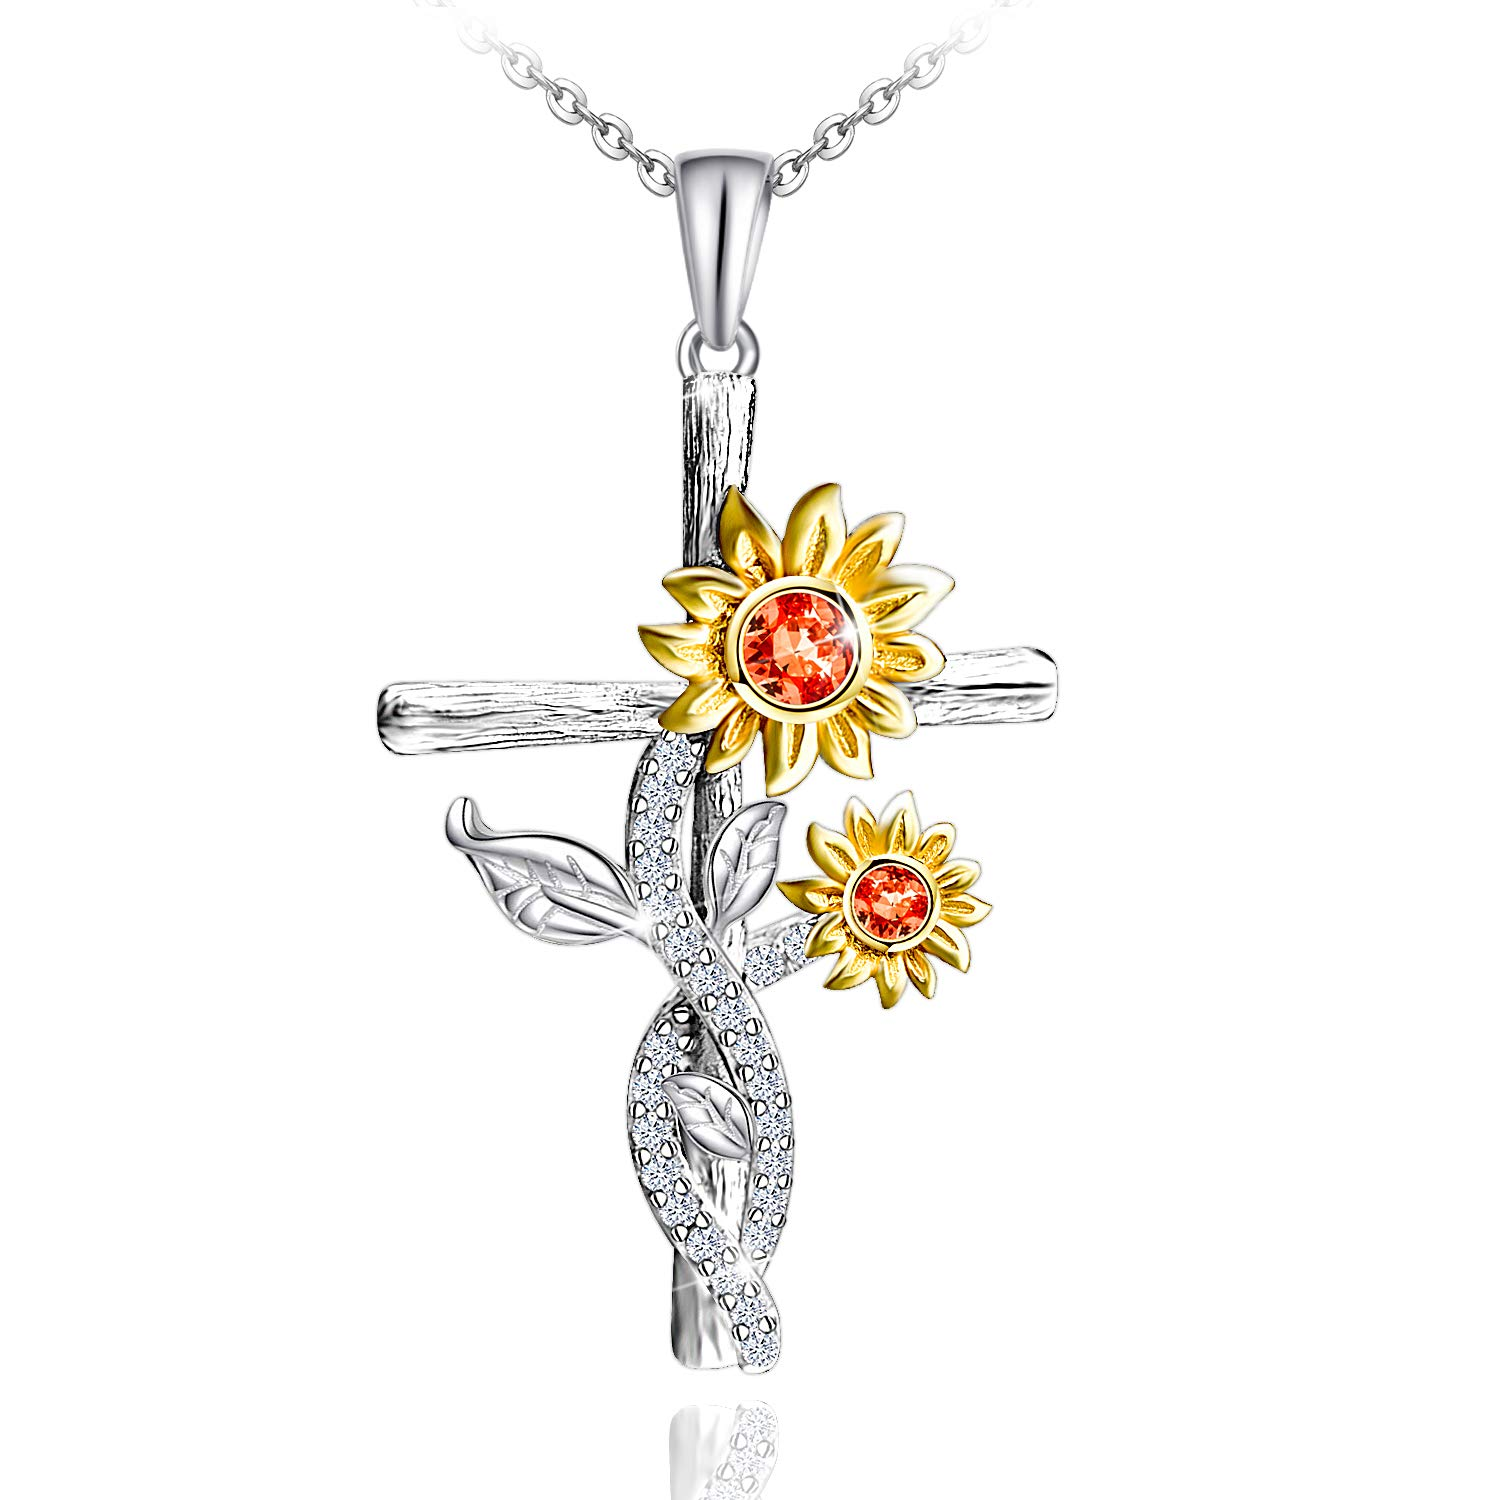 Distance Sunflower Necklace for Women S925 Sterling Silver Necklace Jewelry,You are My Sunshine Pendant Necklaces Jewelry Gifts for Women Girls Mom Wife